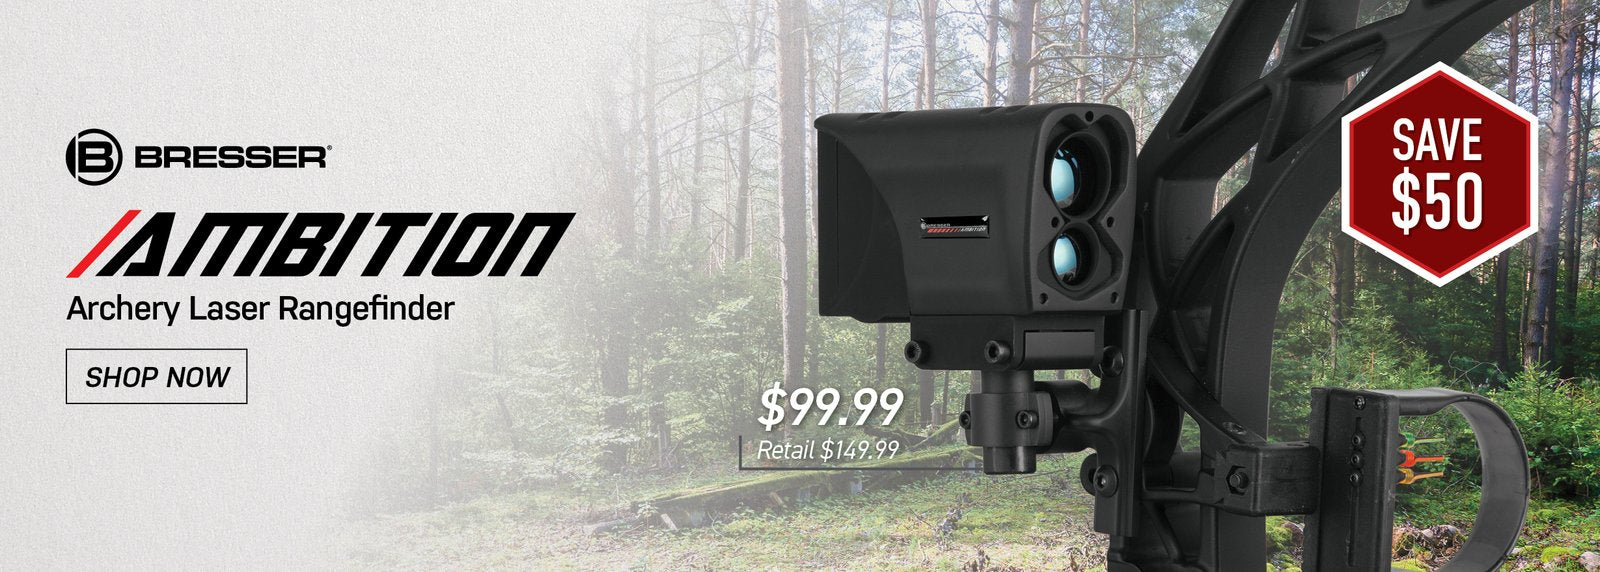 Game Cameras - 5 Megapixel Game Camera - 8 Pack - $175